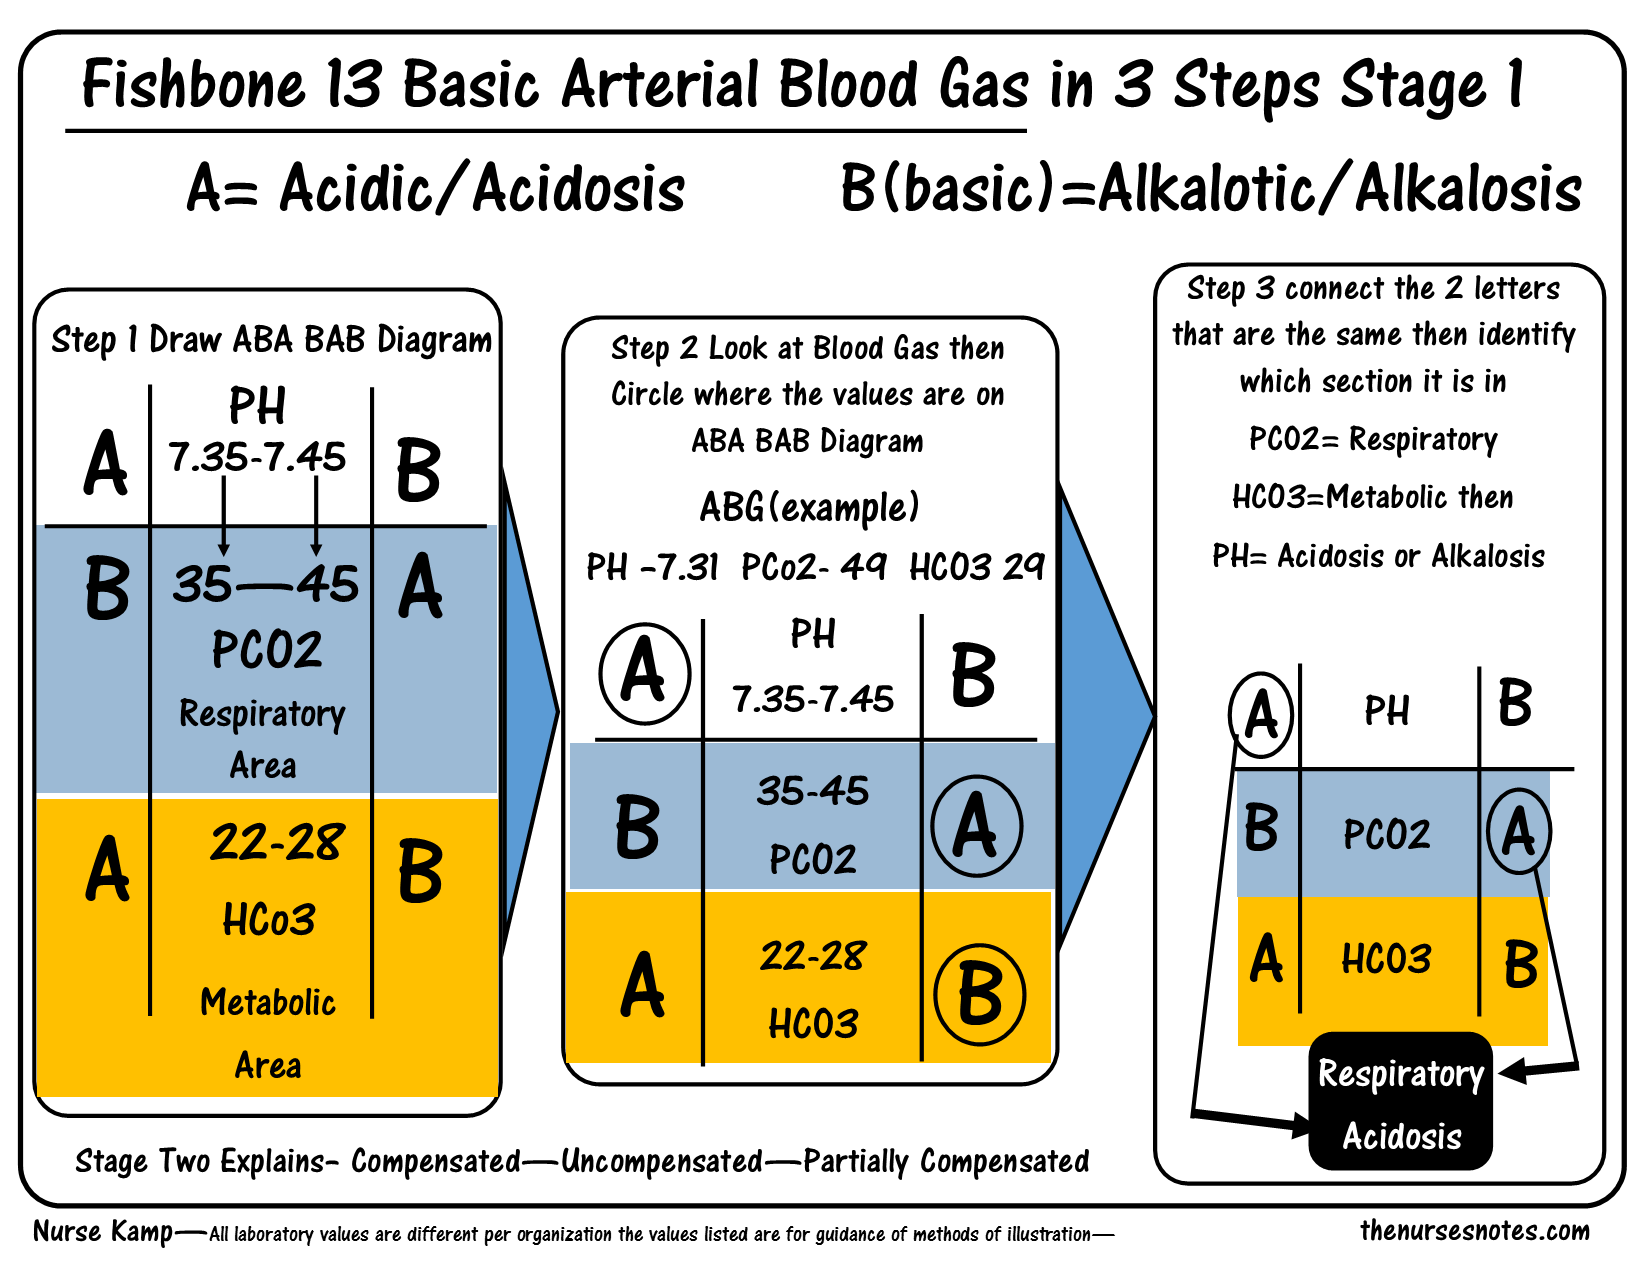 abg fishbone diagram this is the 13th in the series of fishbones on abg interpretation for for